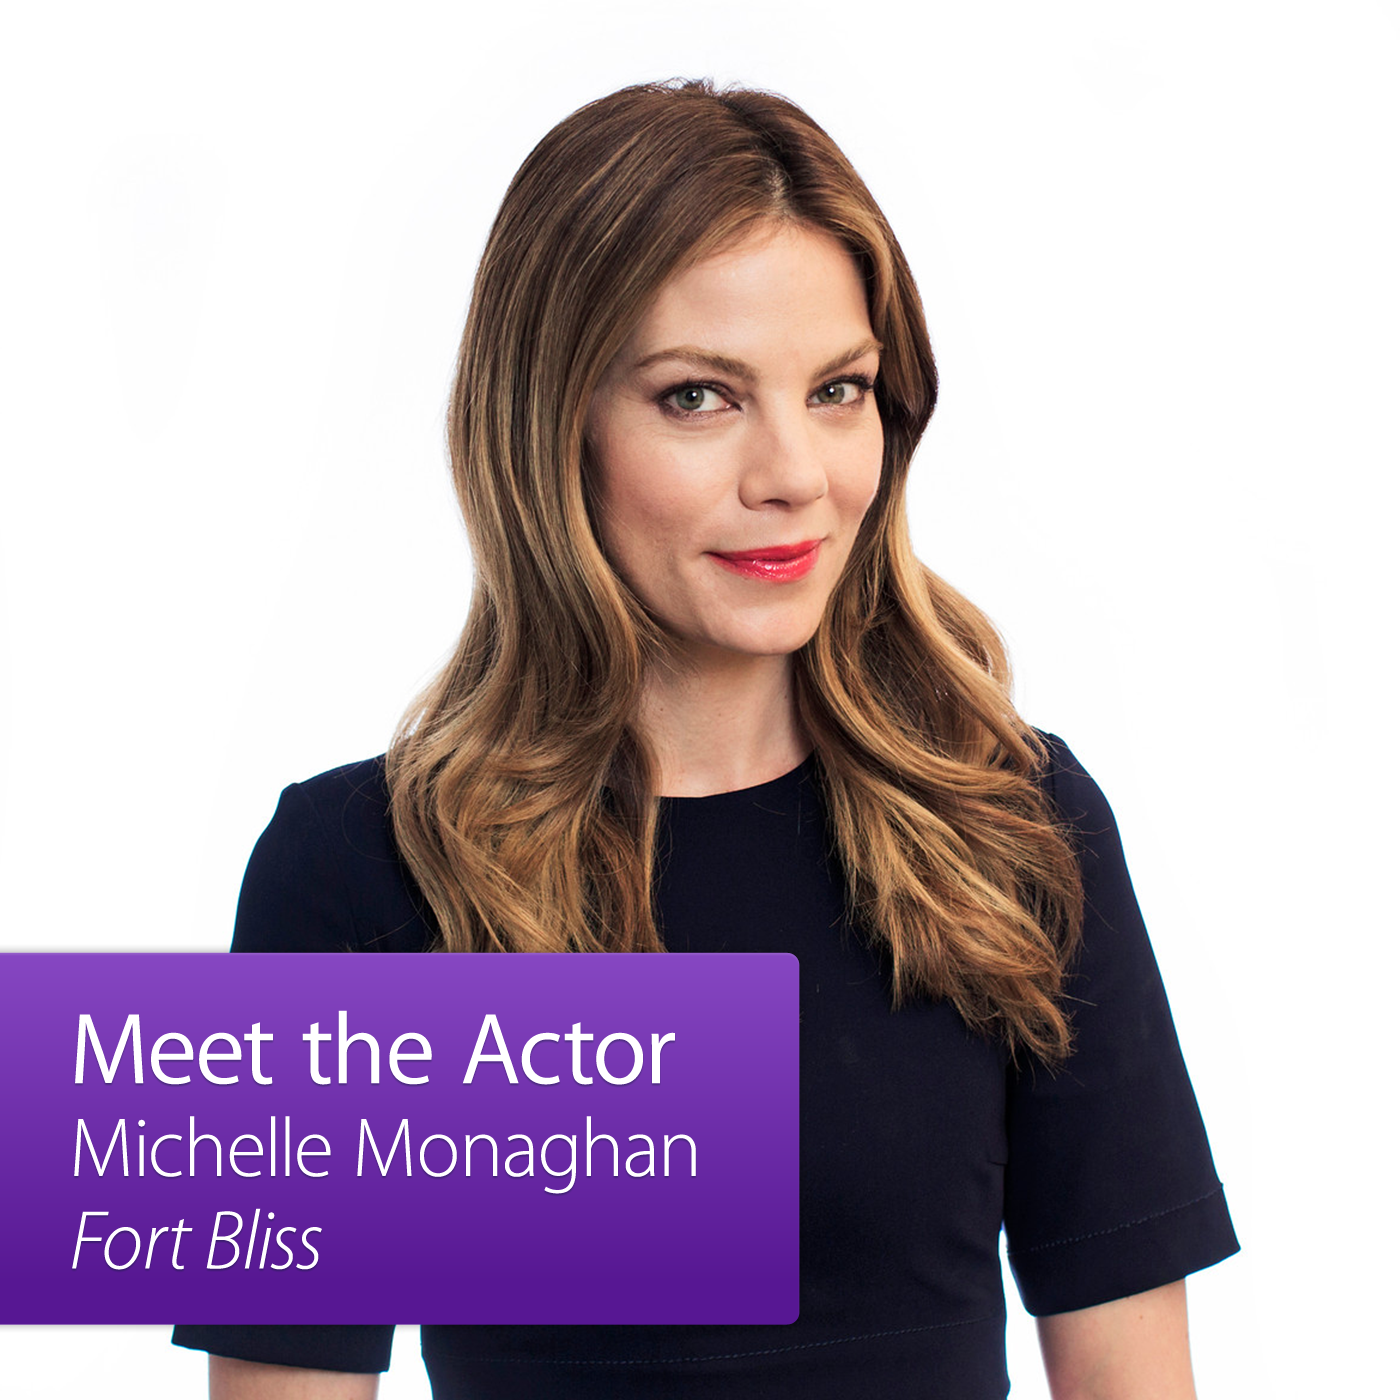 Michelle Monaghan: Meet the Actor